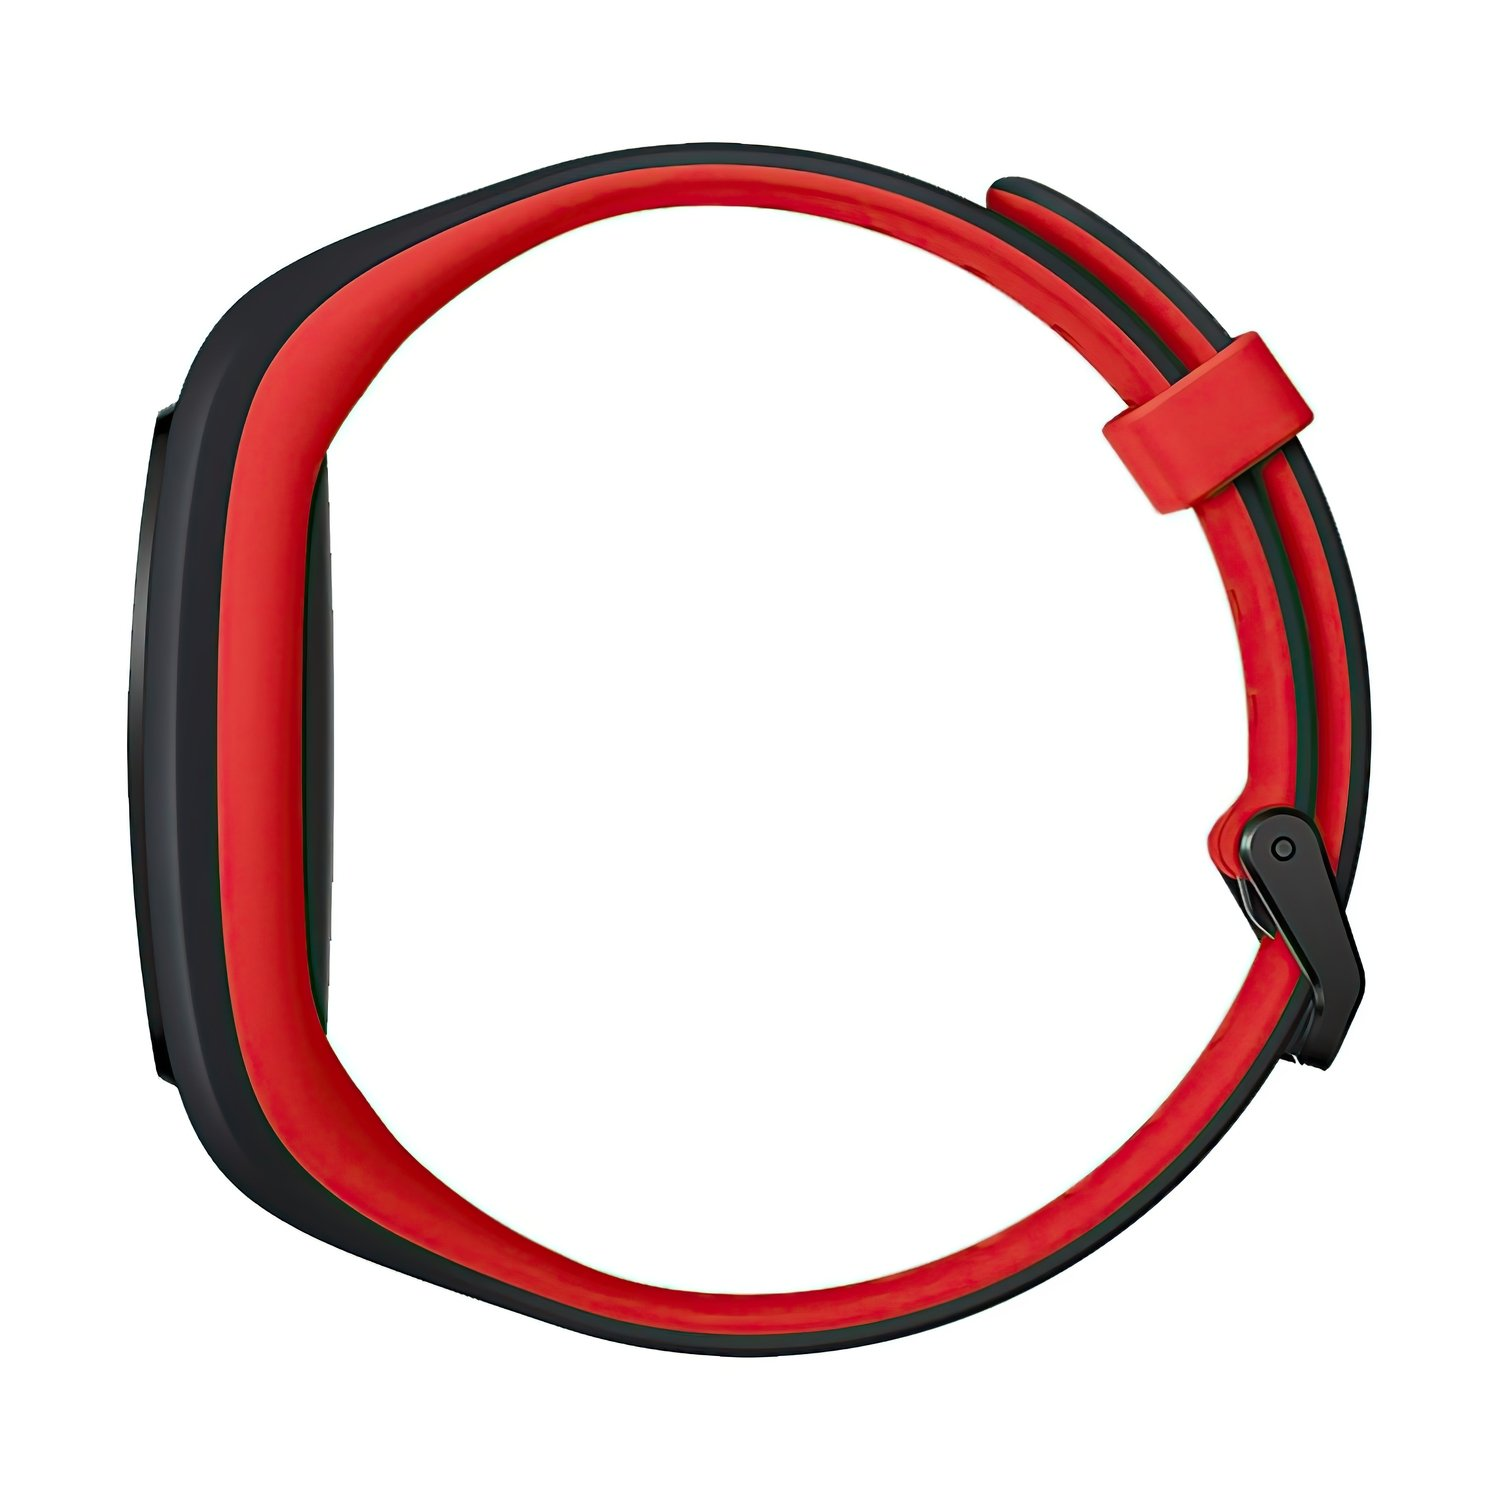 Фитнес-браслет Honor Band 4 Running (AW70) Black Red фото 5